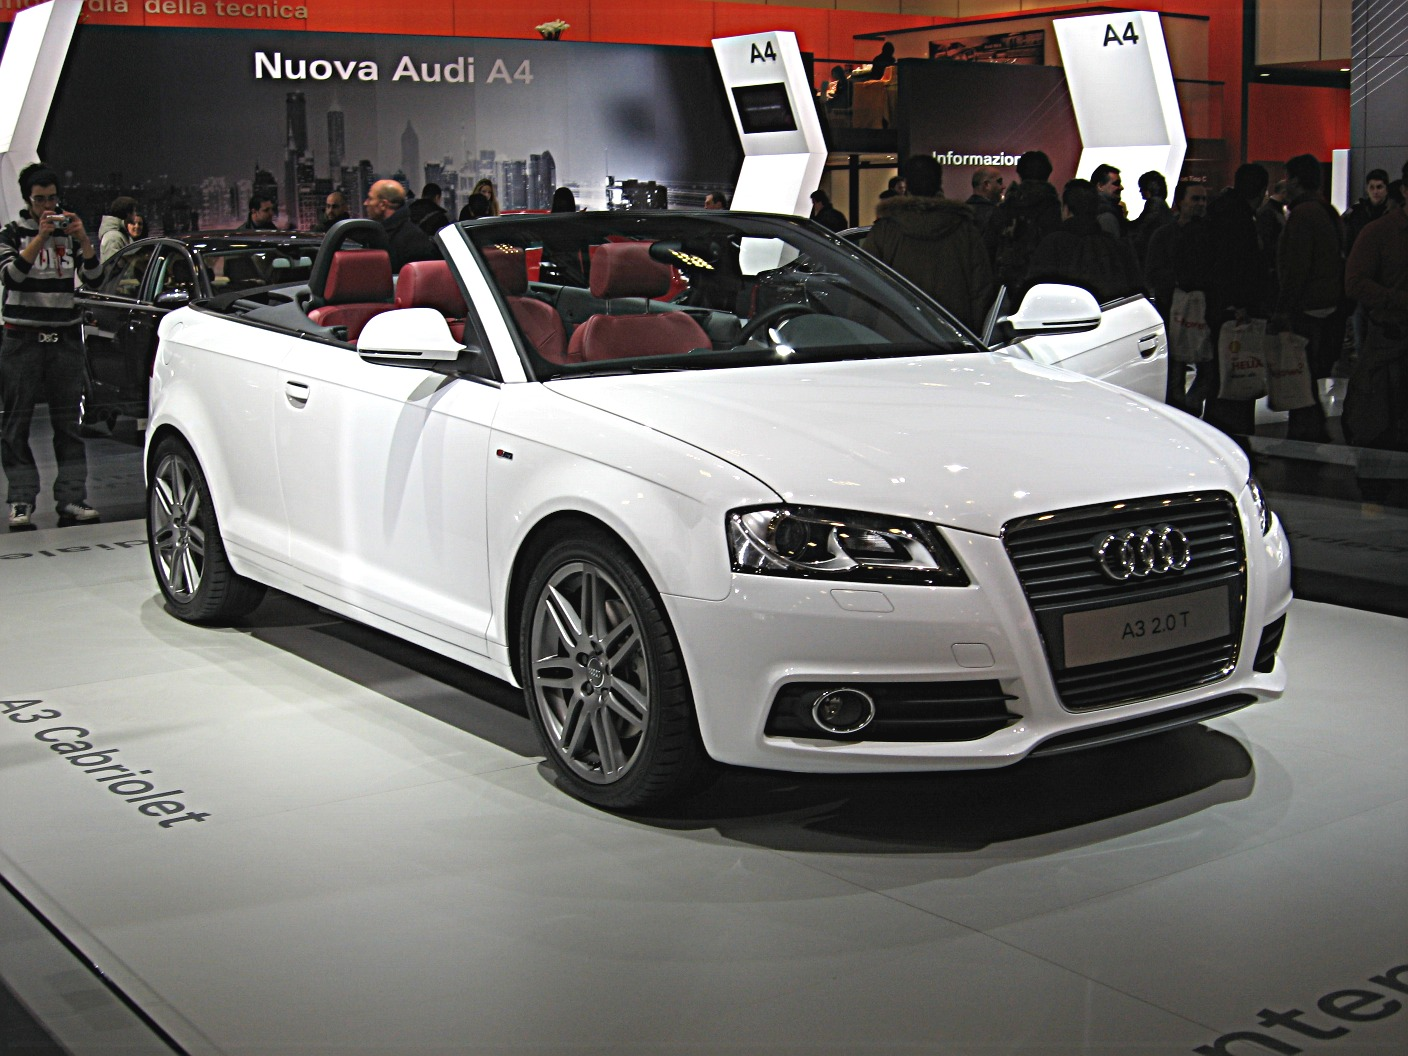 audi a3 cabriolet technical details history photos on. Black Bedroom Furniture Sets. Home Design Ideas